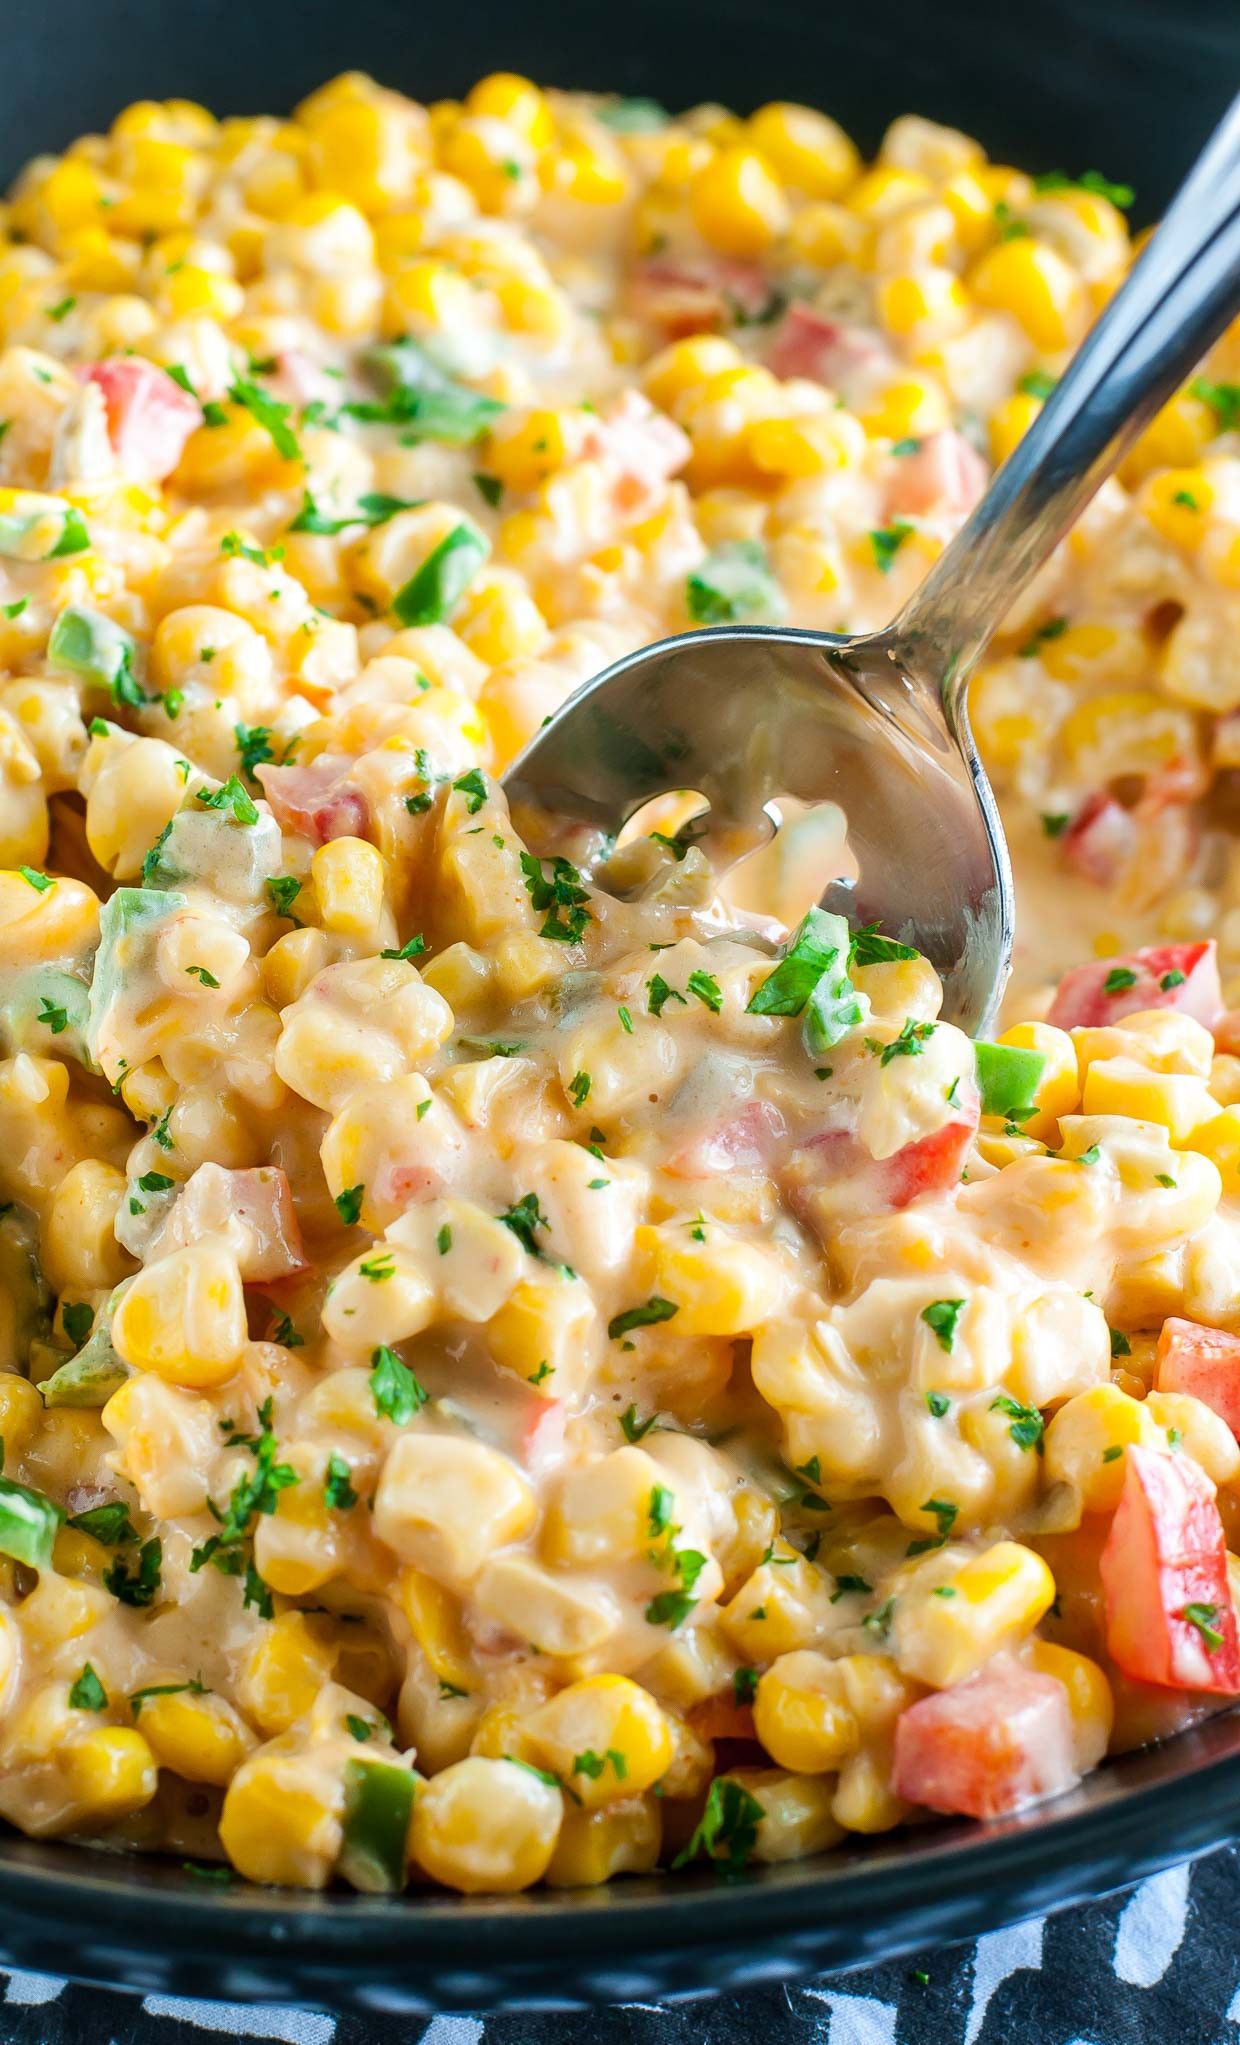 Thanksgiving Corn Recipes  Spicy Southern Hot Corn Peas and Crayons Recipes